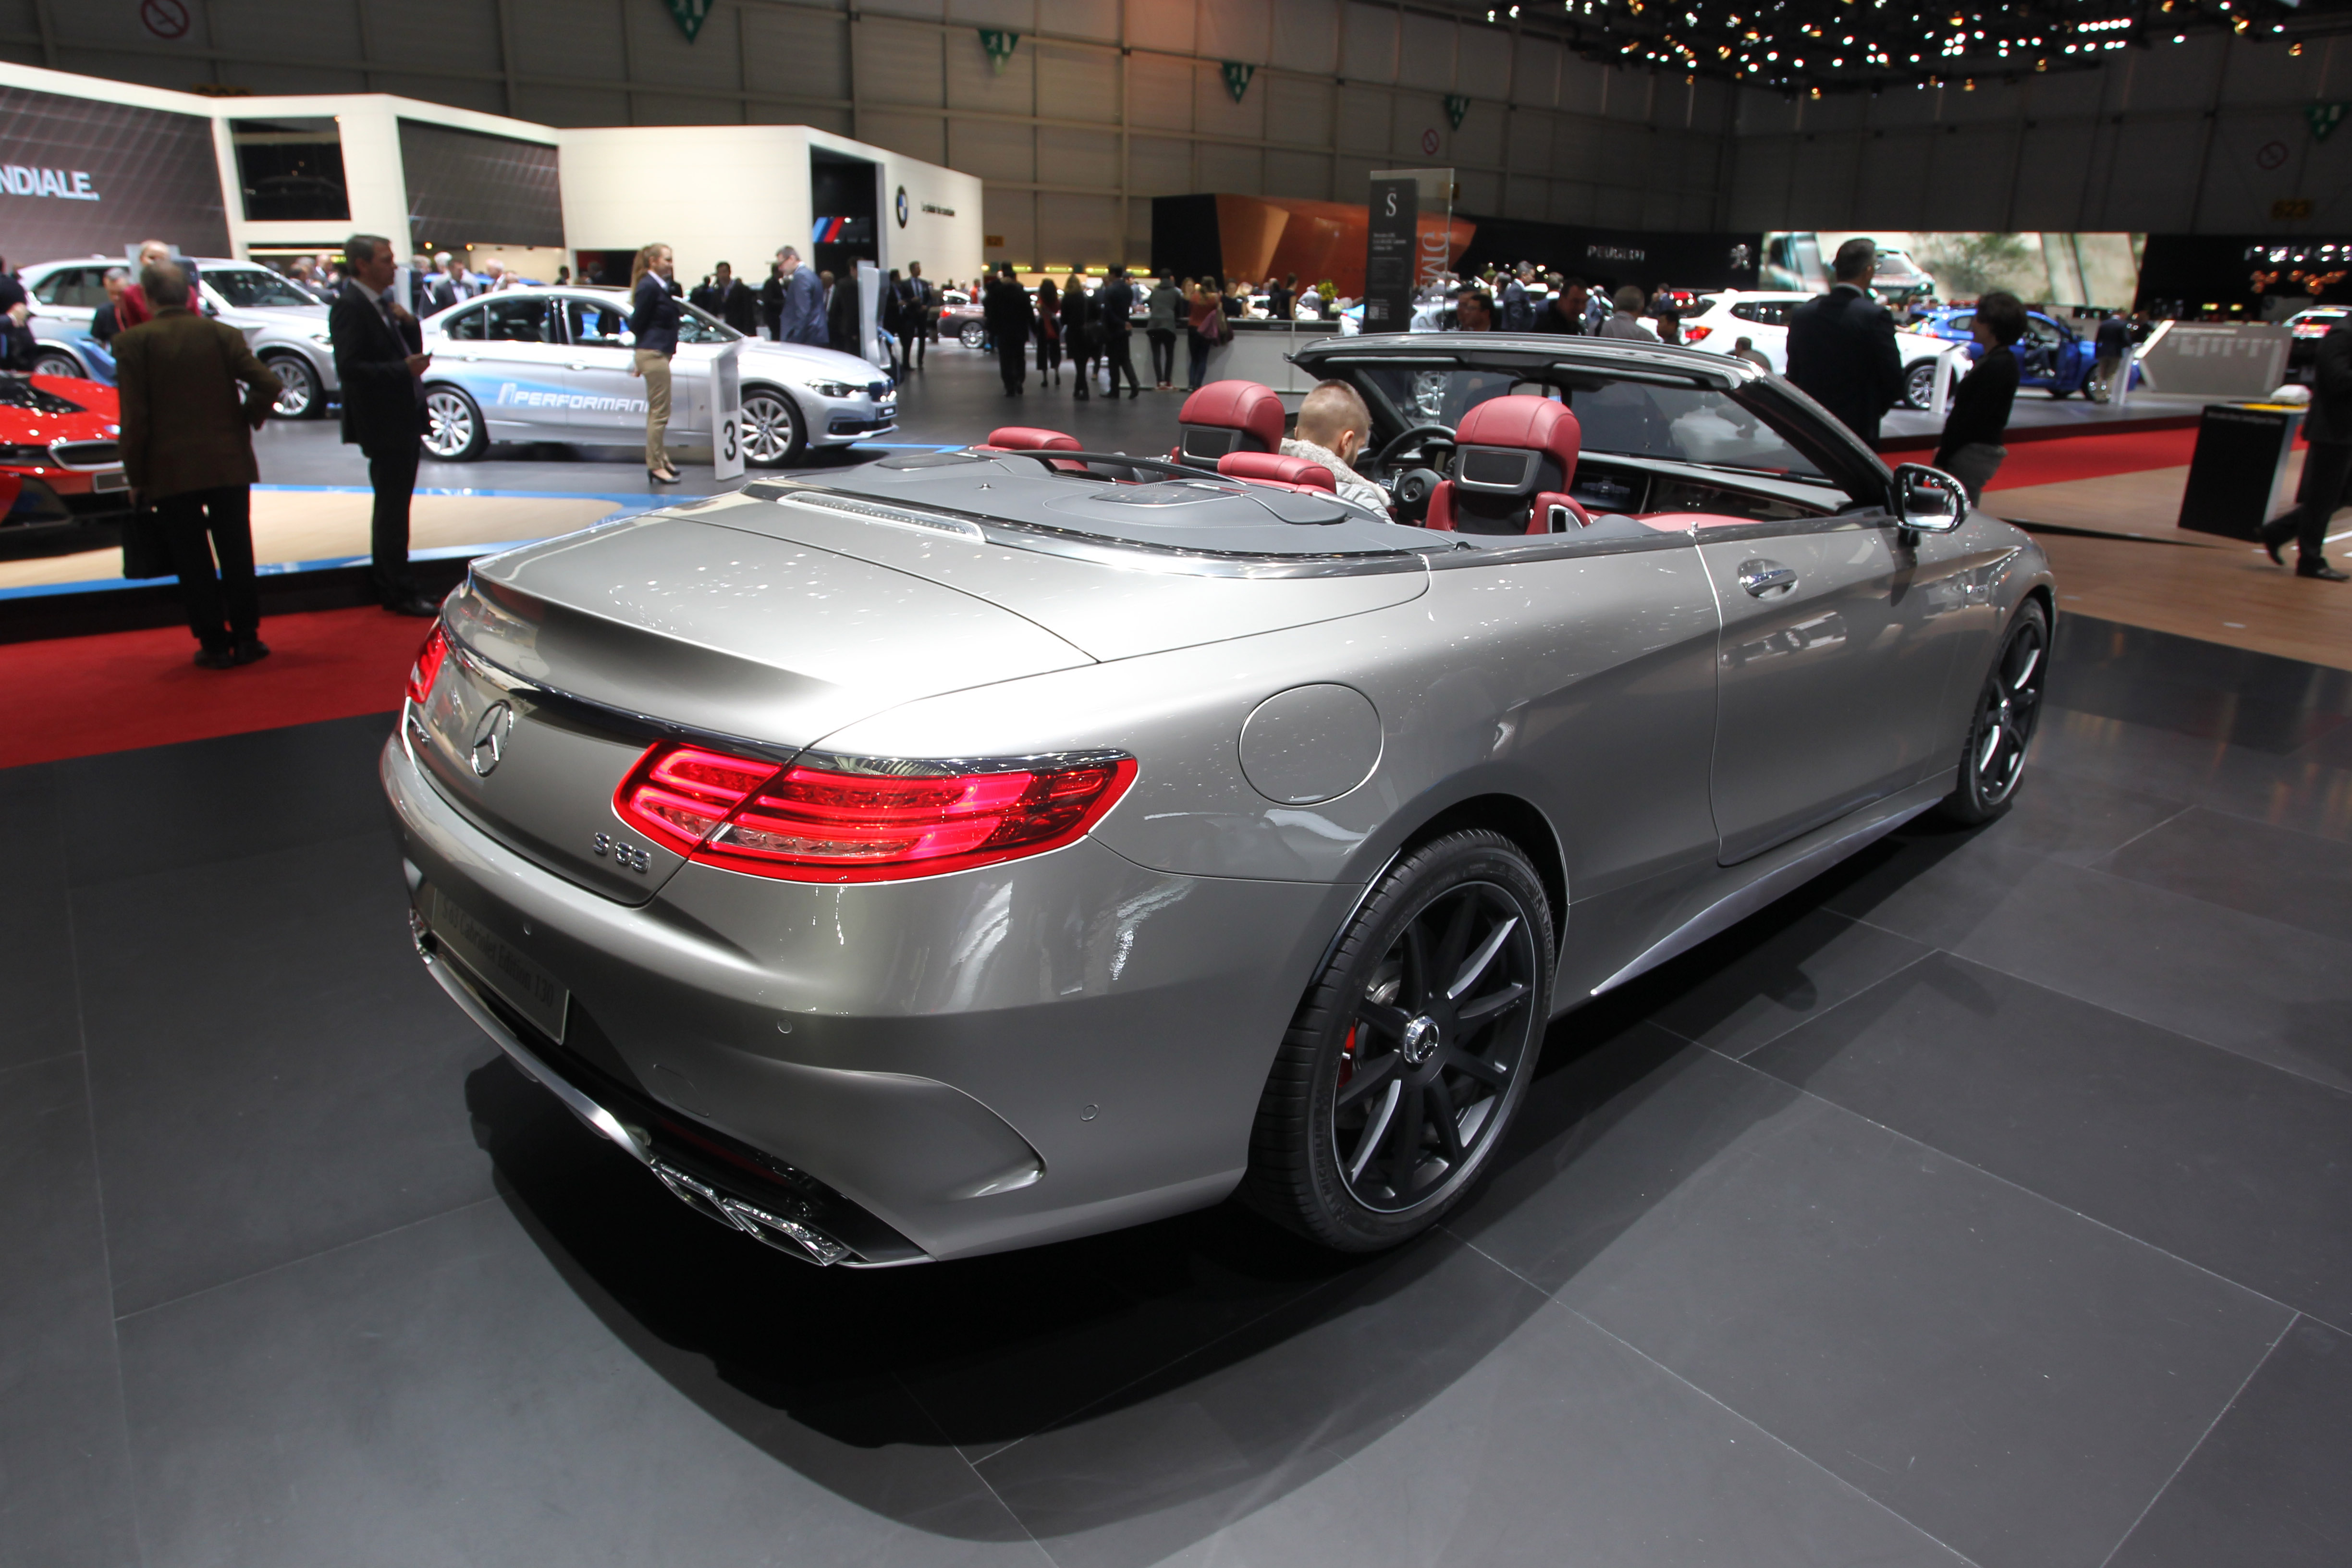 mercedes classe s amg 63 edition 130 salone di ginevra 2016 8 8. Black Bedroom Furniture Sets. Home Design Ideas